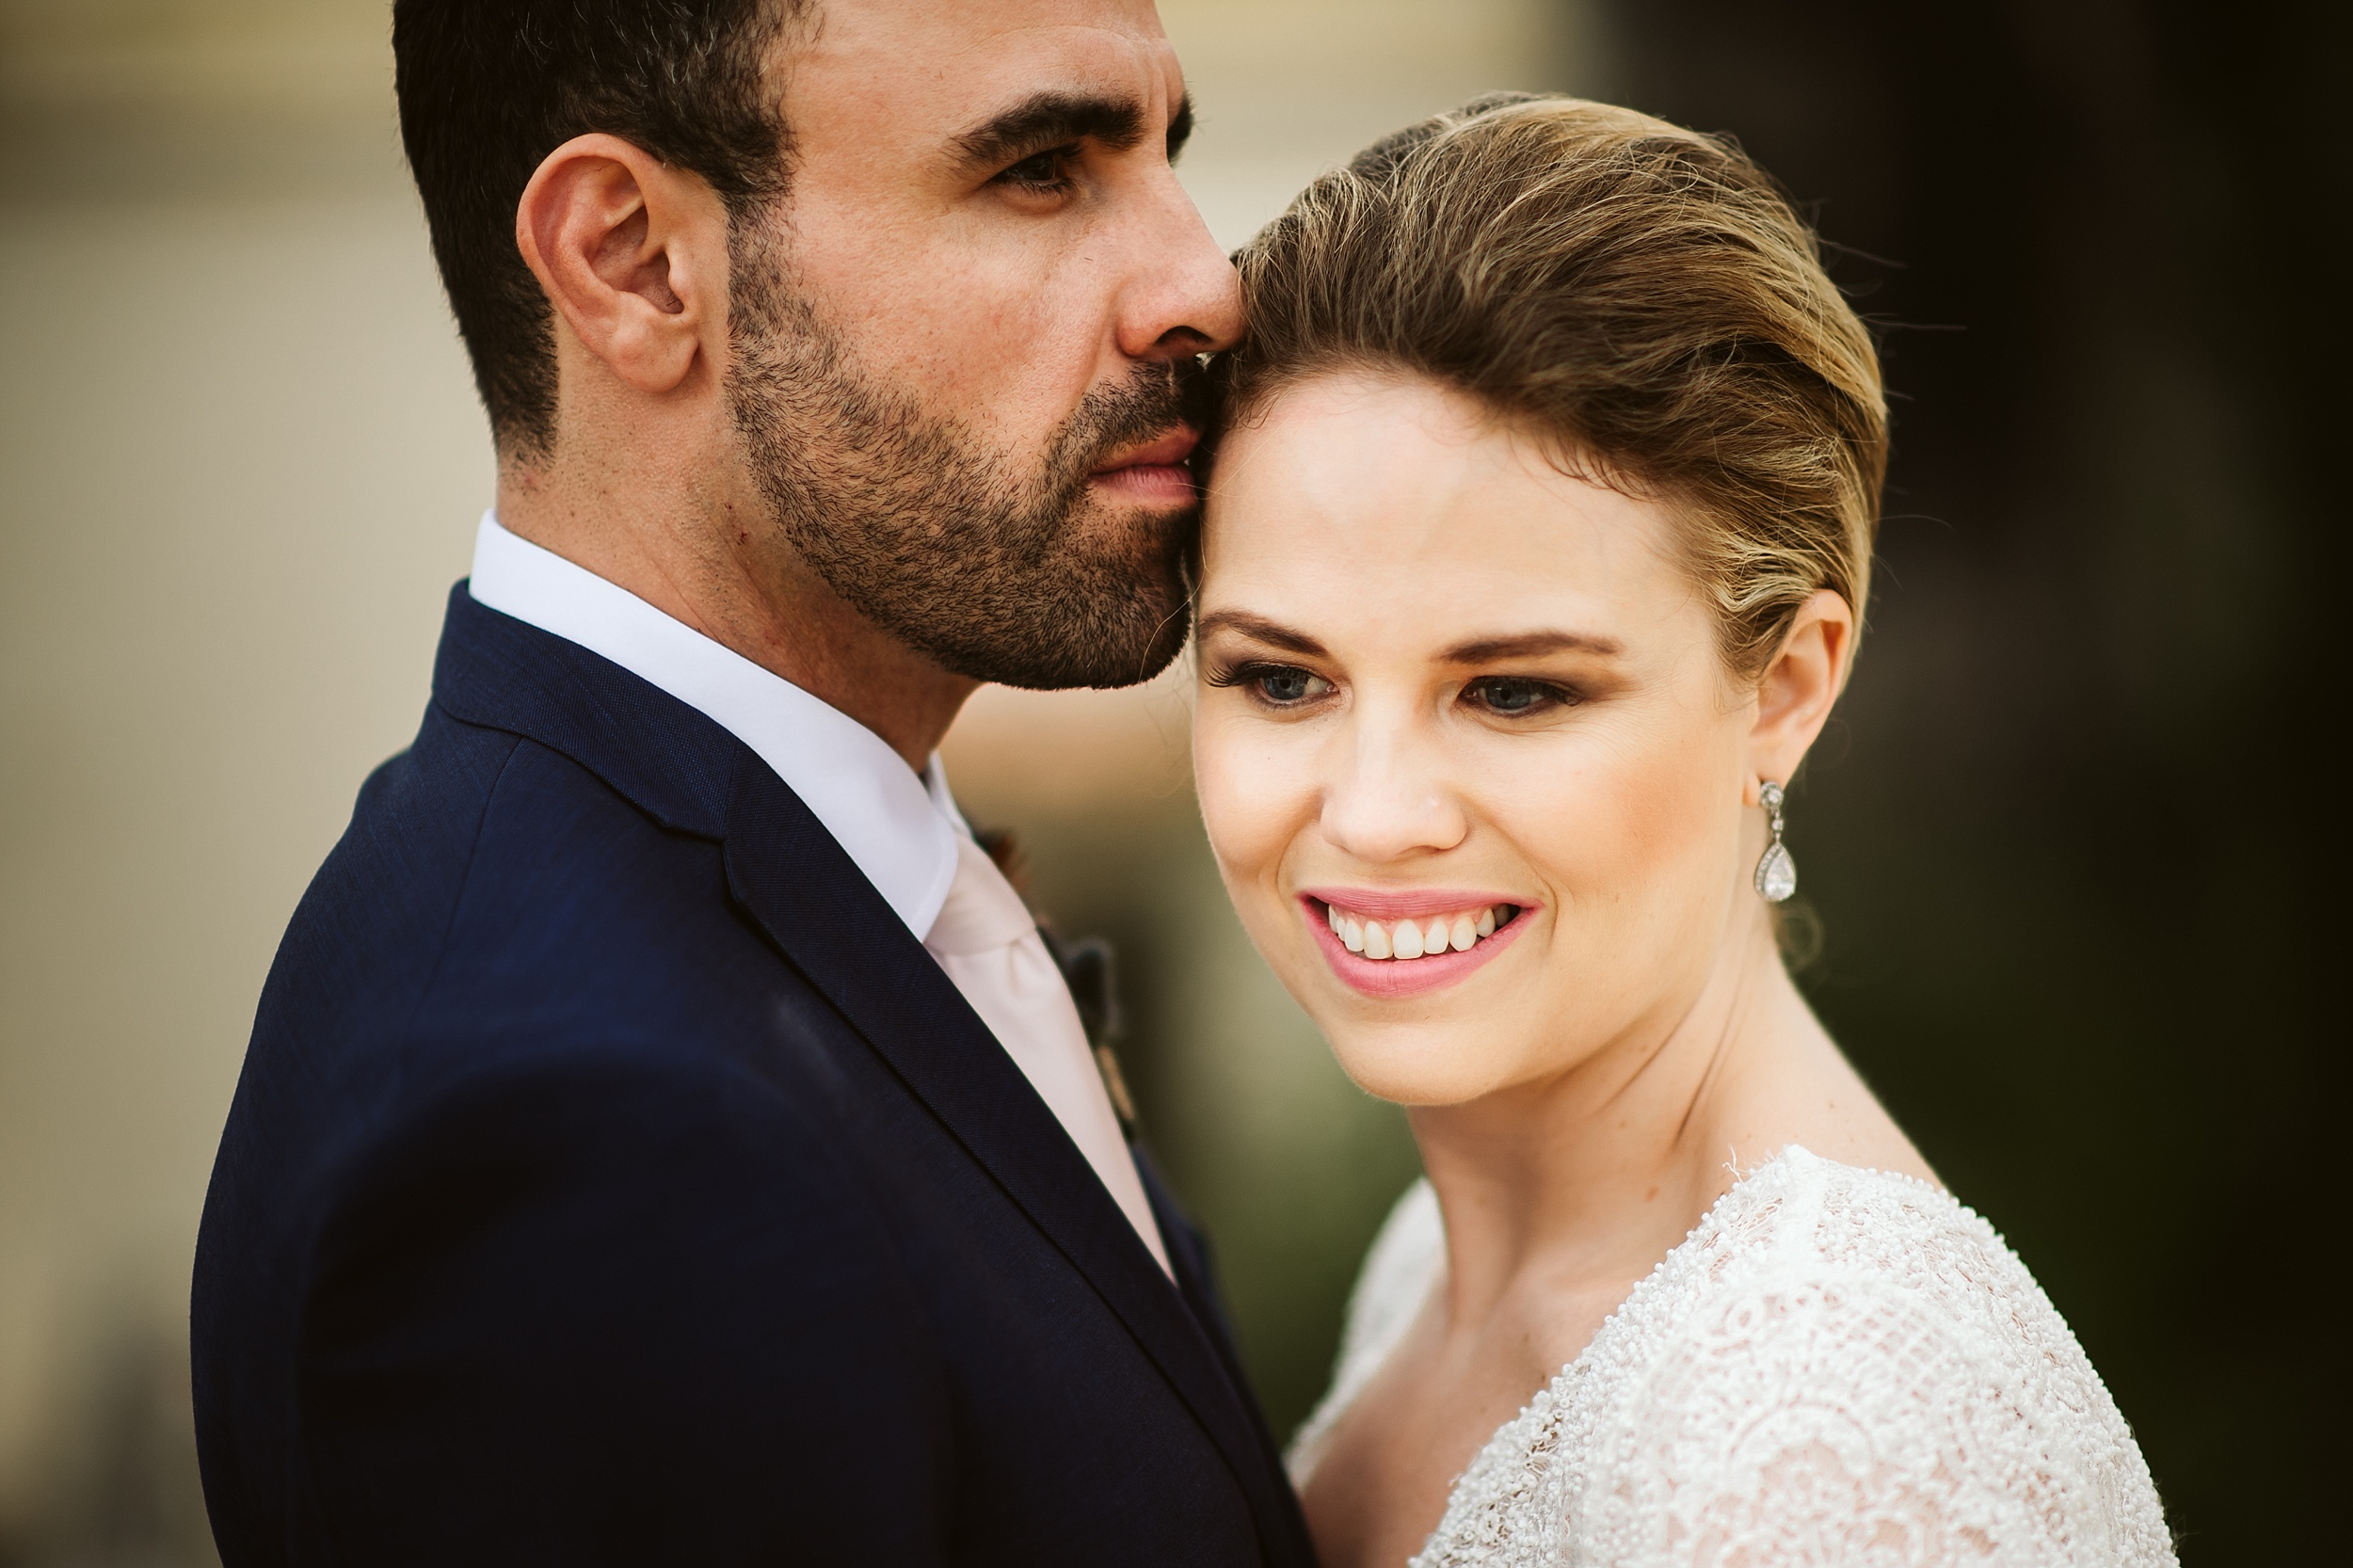 Toronto_Wedding_Photographer_Colombia_Destination_Wedding_0047.jpg